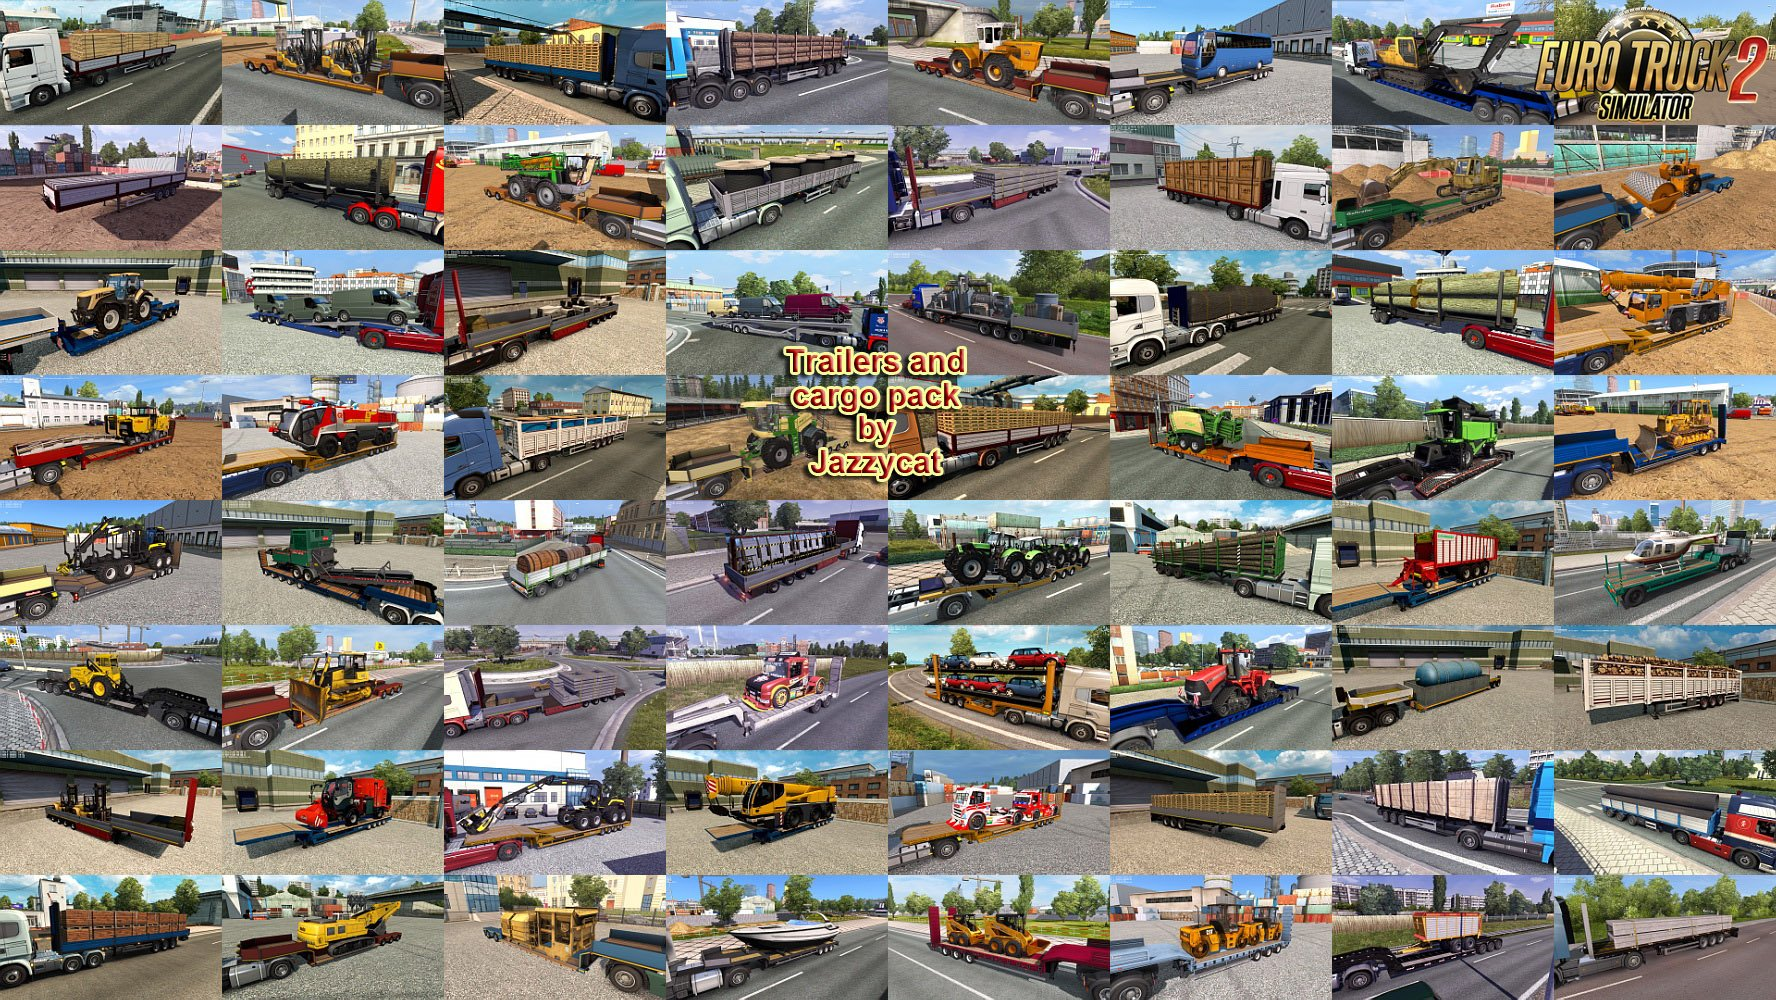 Trailers and Cargo Pack v5.5 by Jazzycat